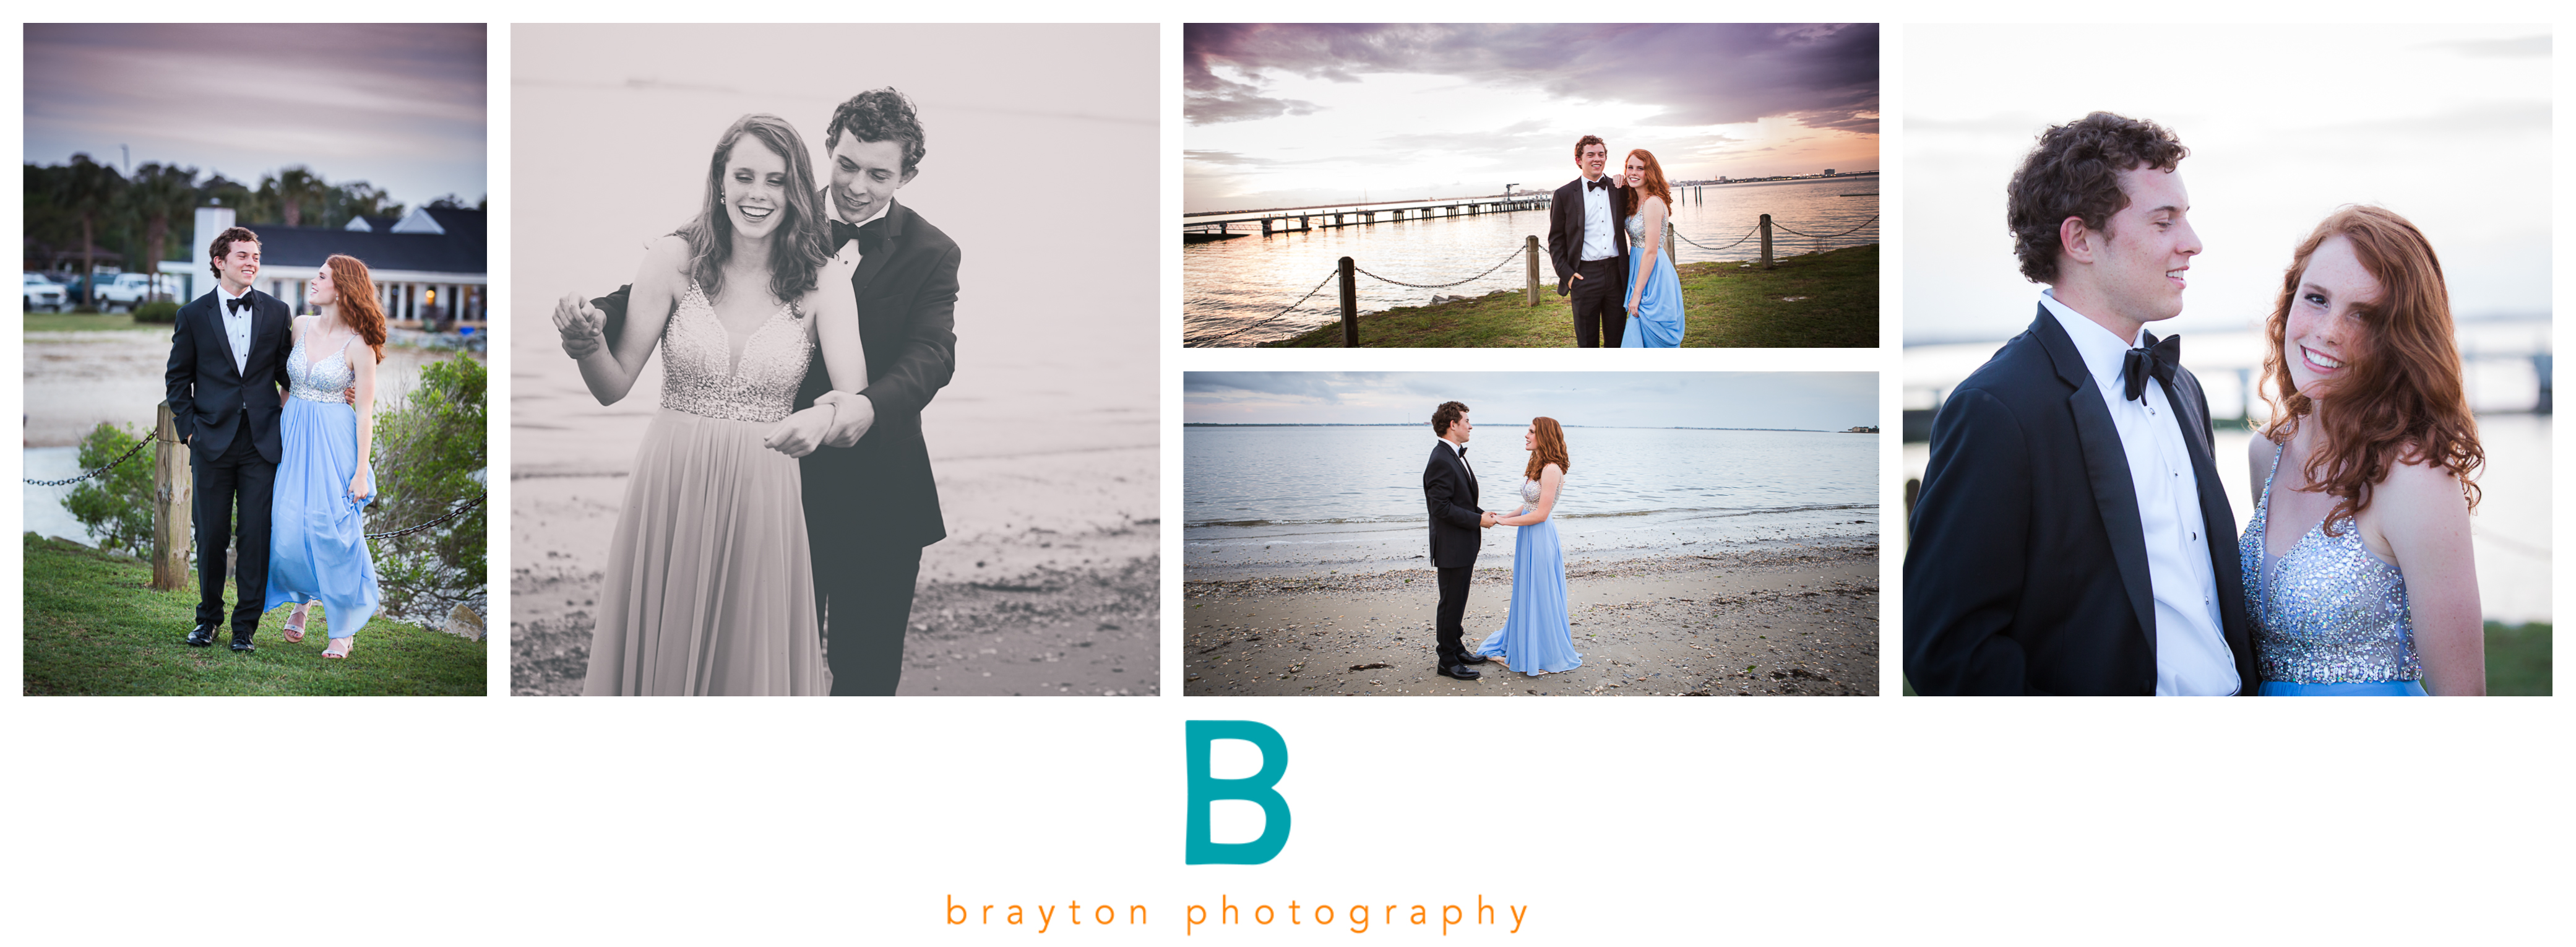 beach prom photography